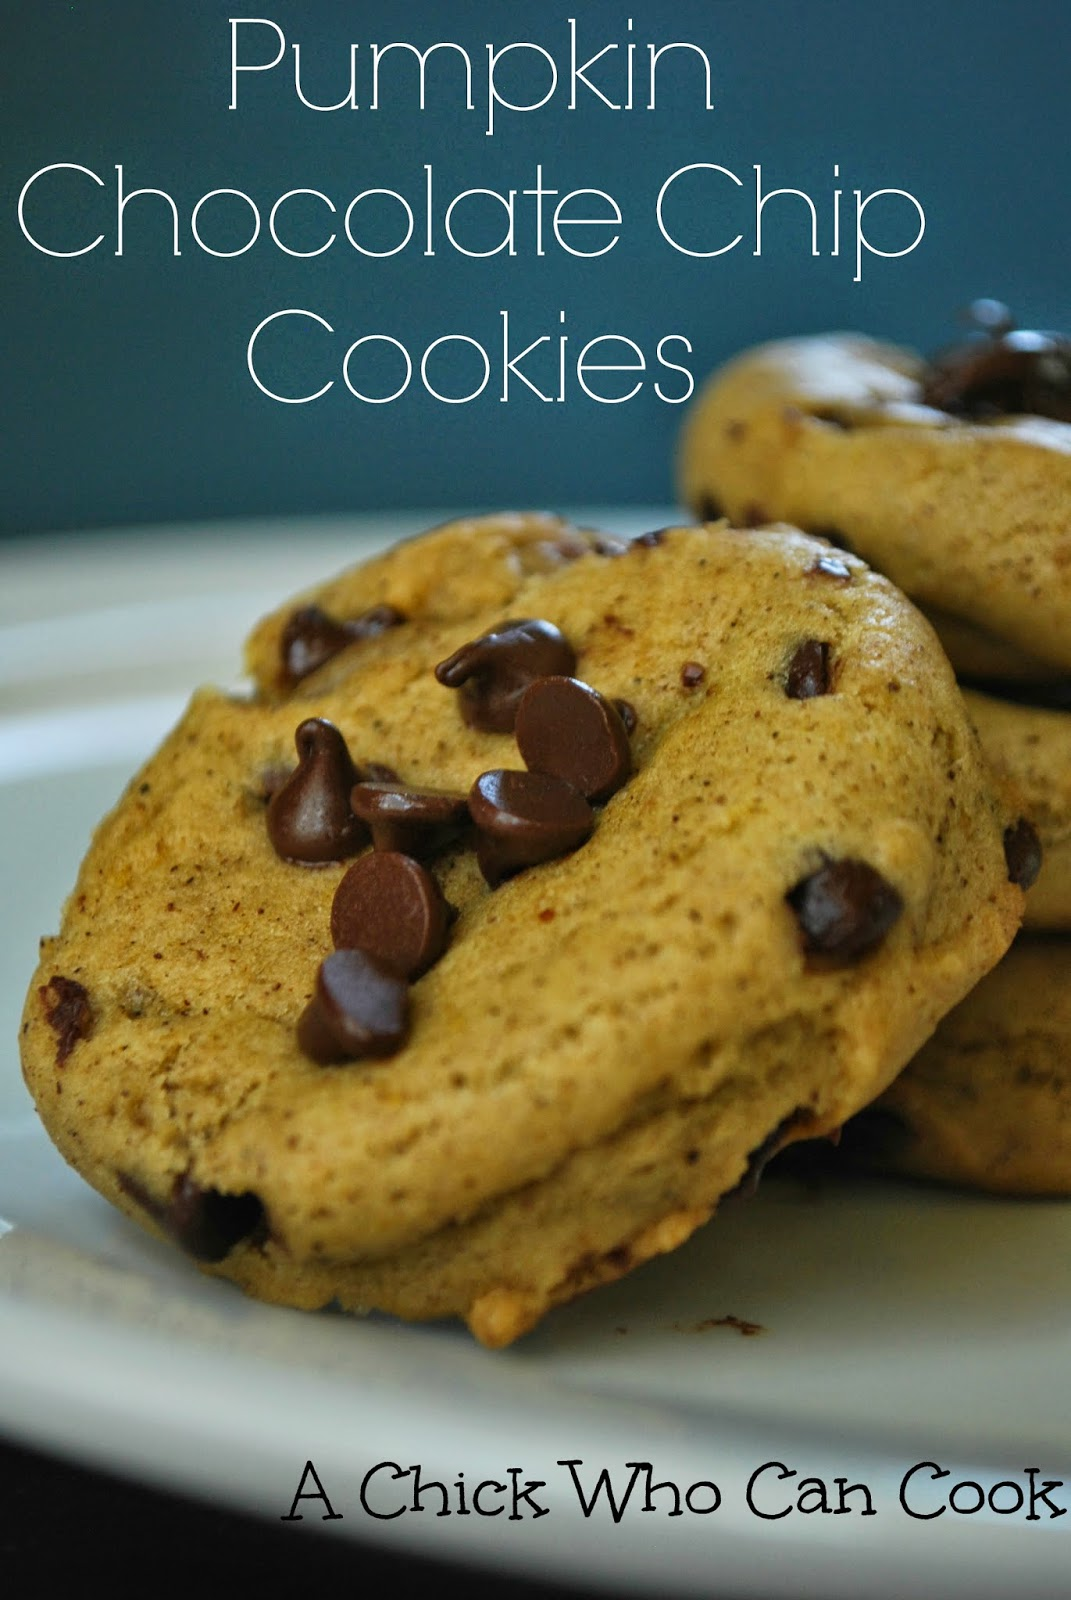 Chick Who Can Cook: Pumpkin Chocolate Chip Cookies